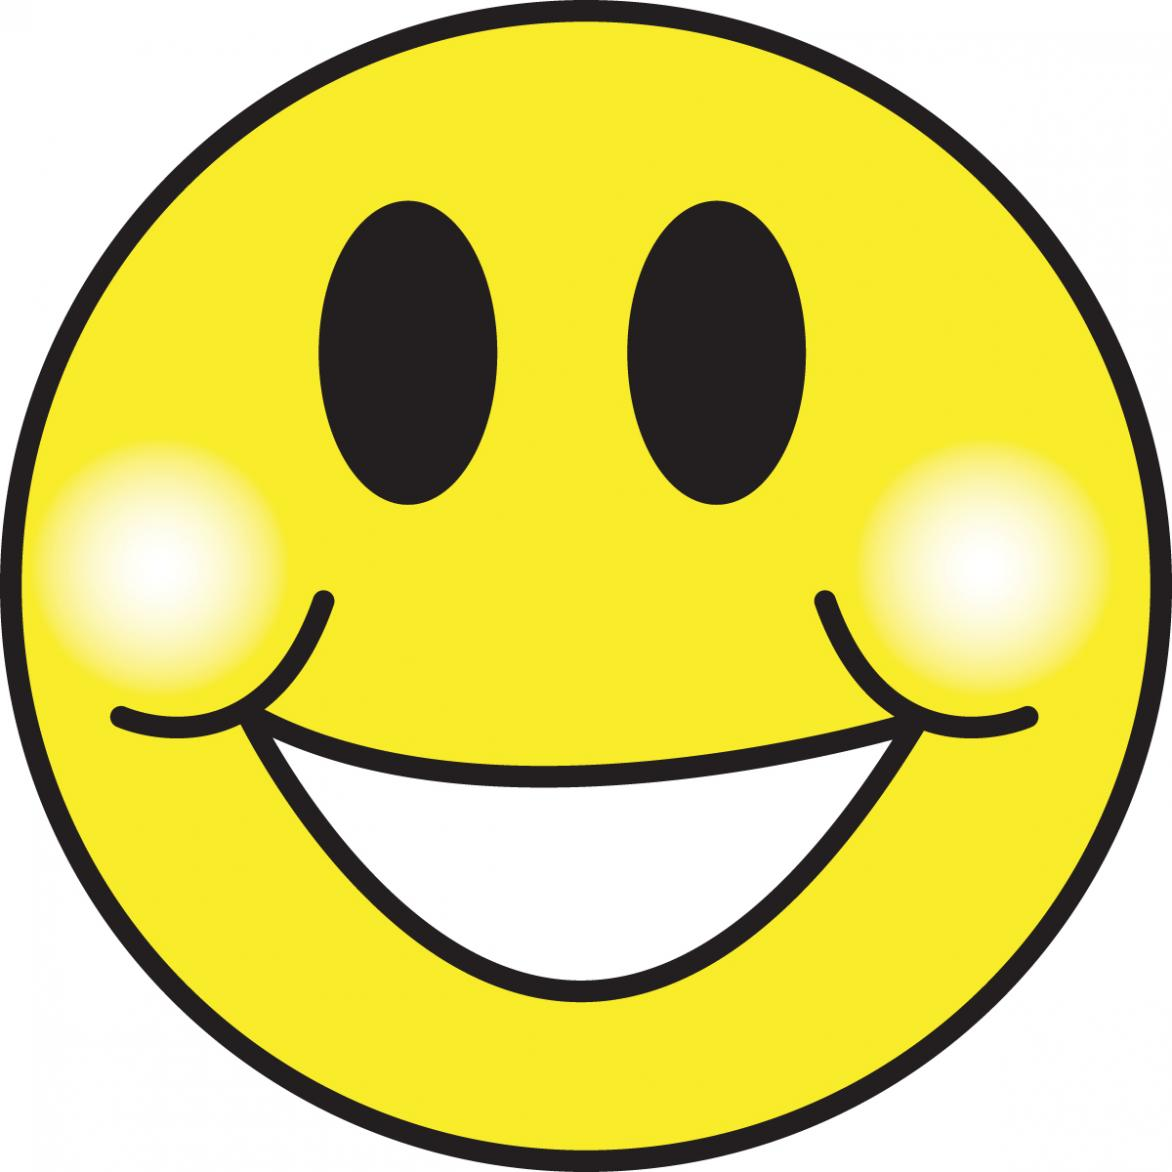 Free Cartoon Smiling Faces, Download Free Clip Art, Free Clip Art on.